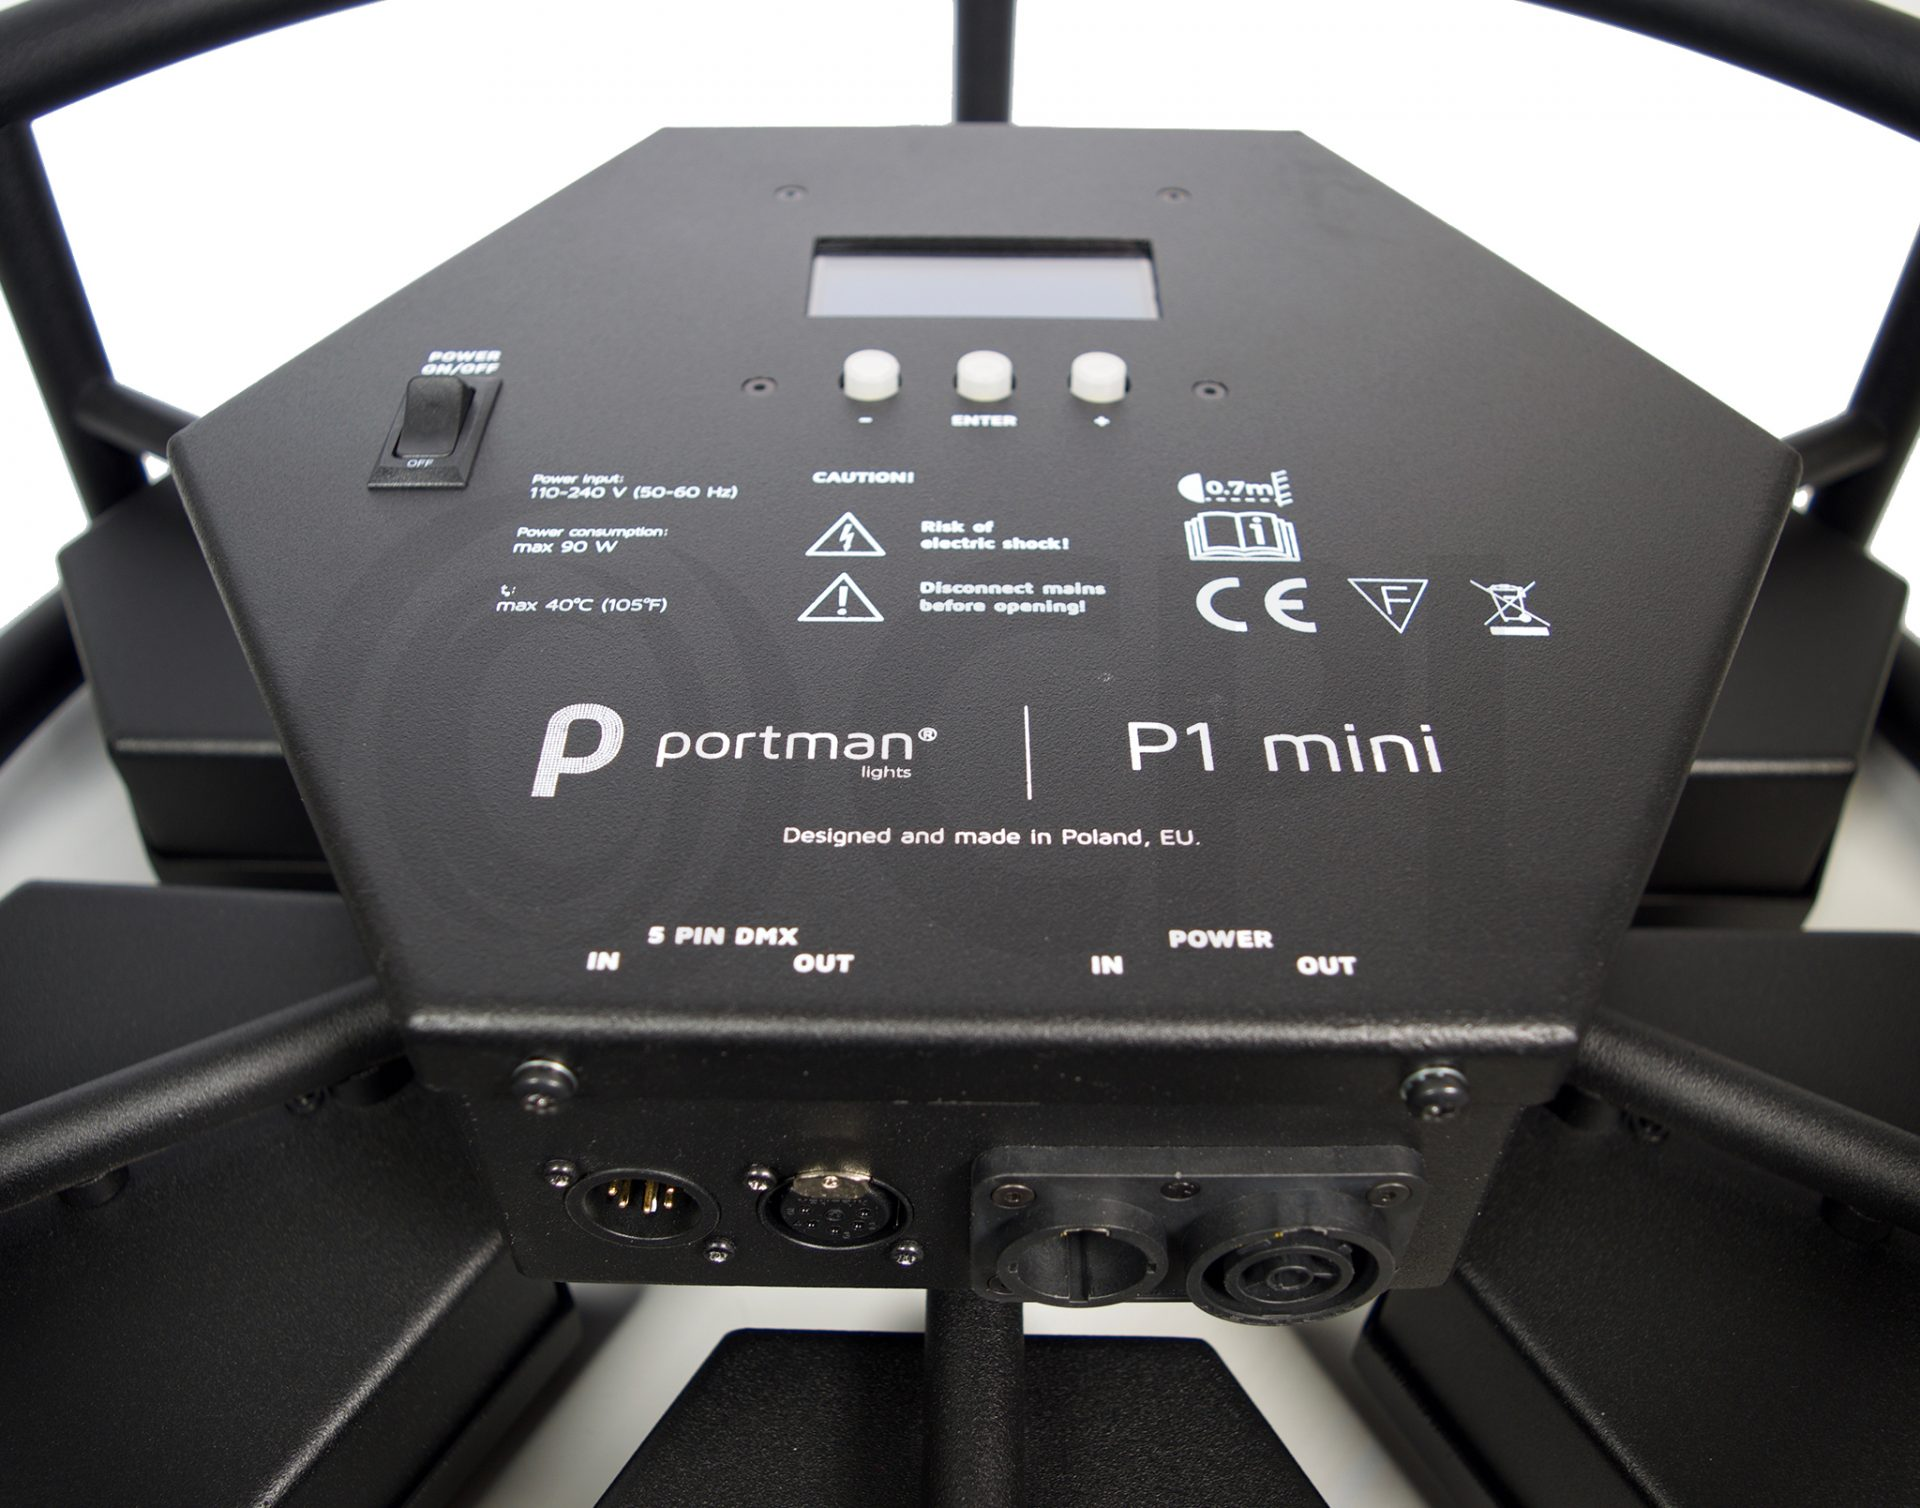 Portman P1 Mini LED Inputs